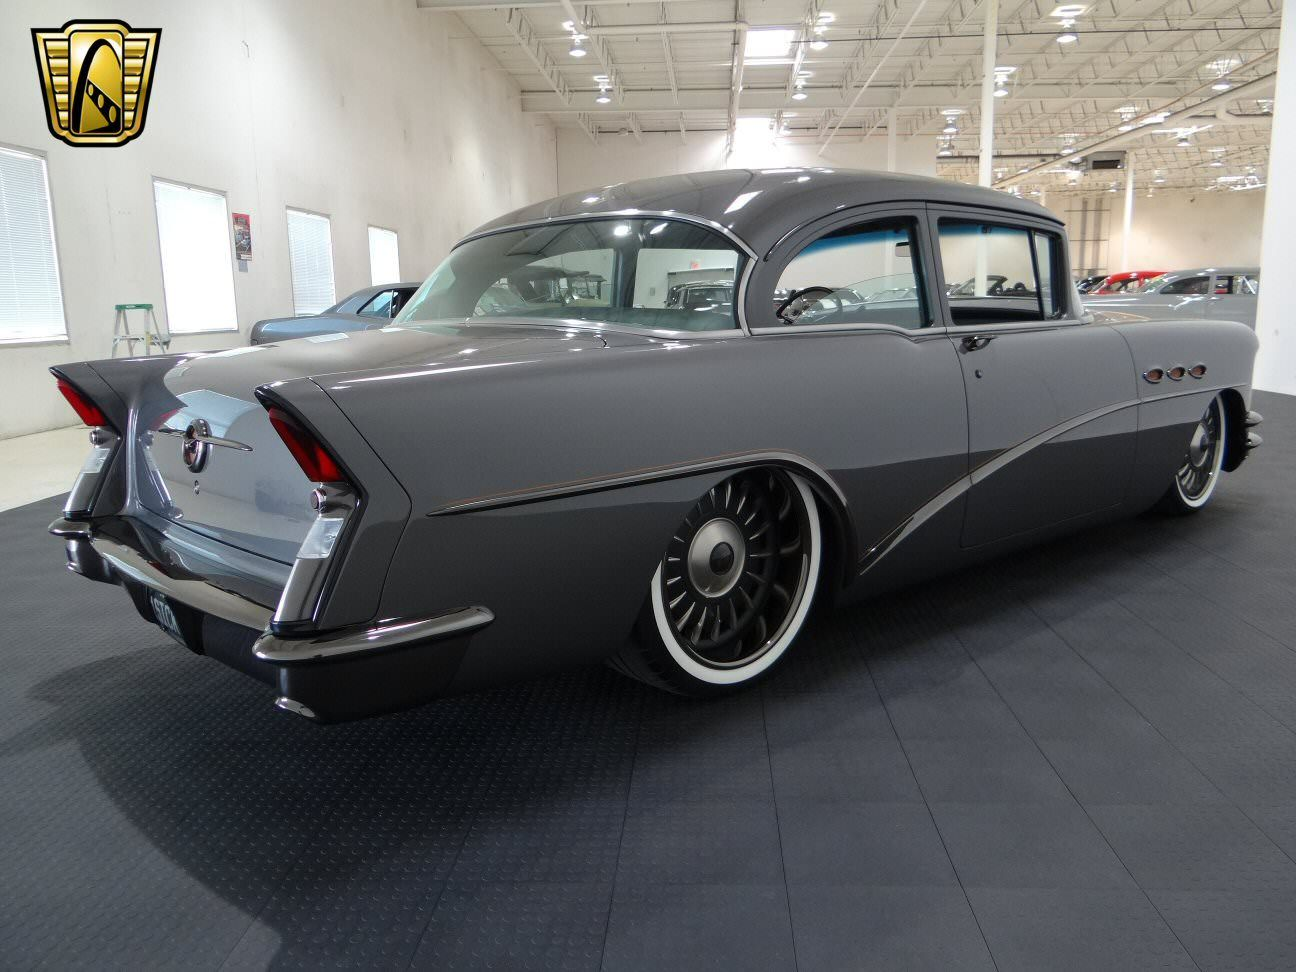 gateway classic cars classic cars for sale muscle cars for sale street rods